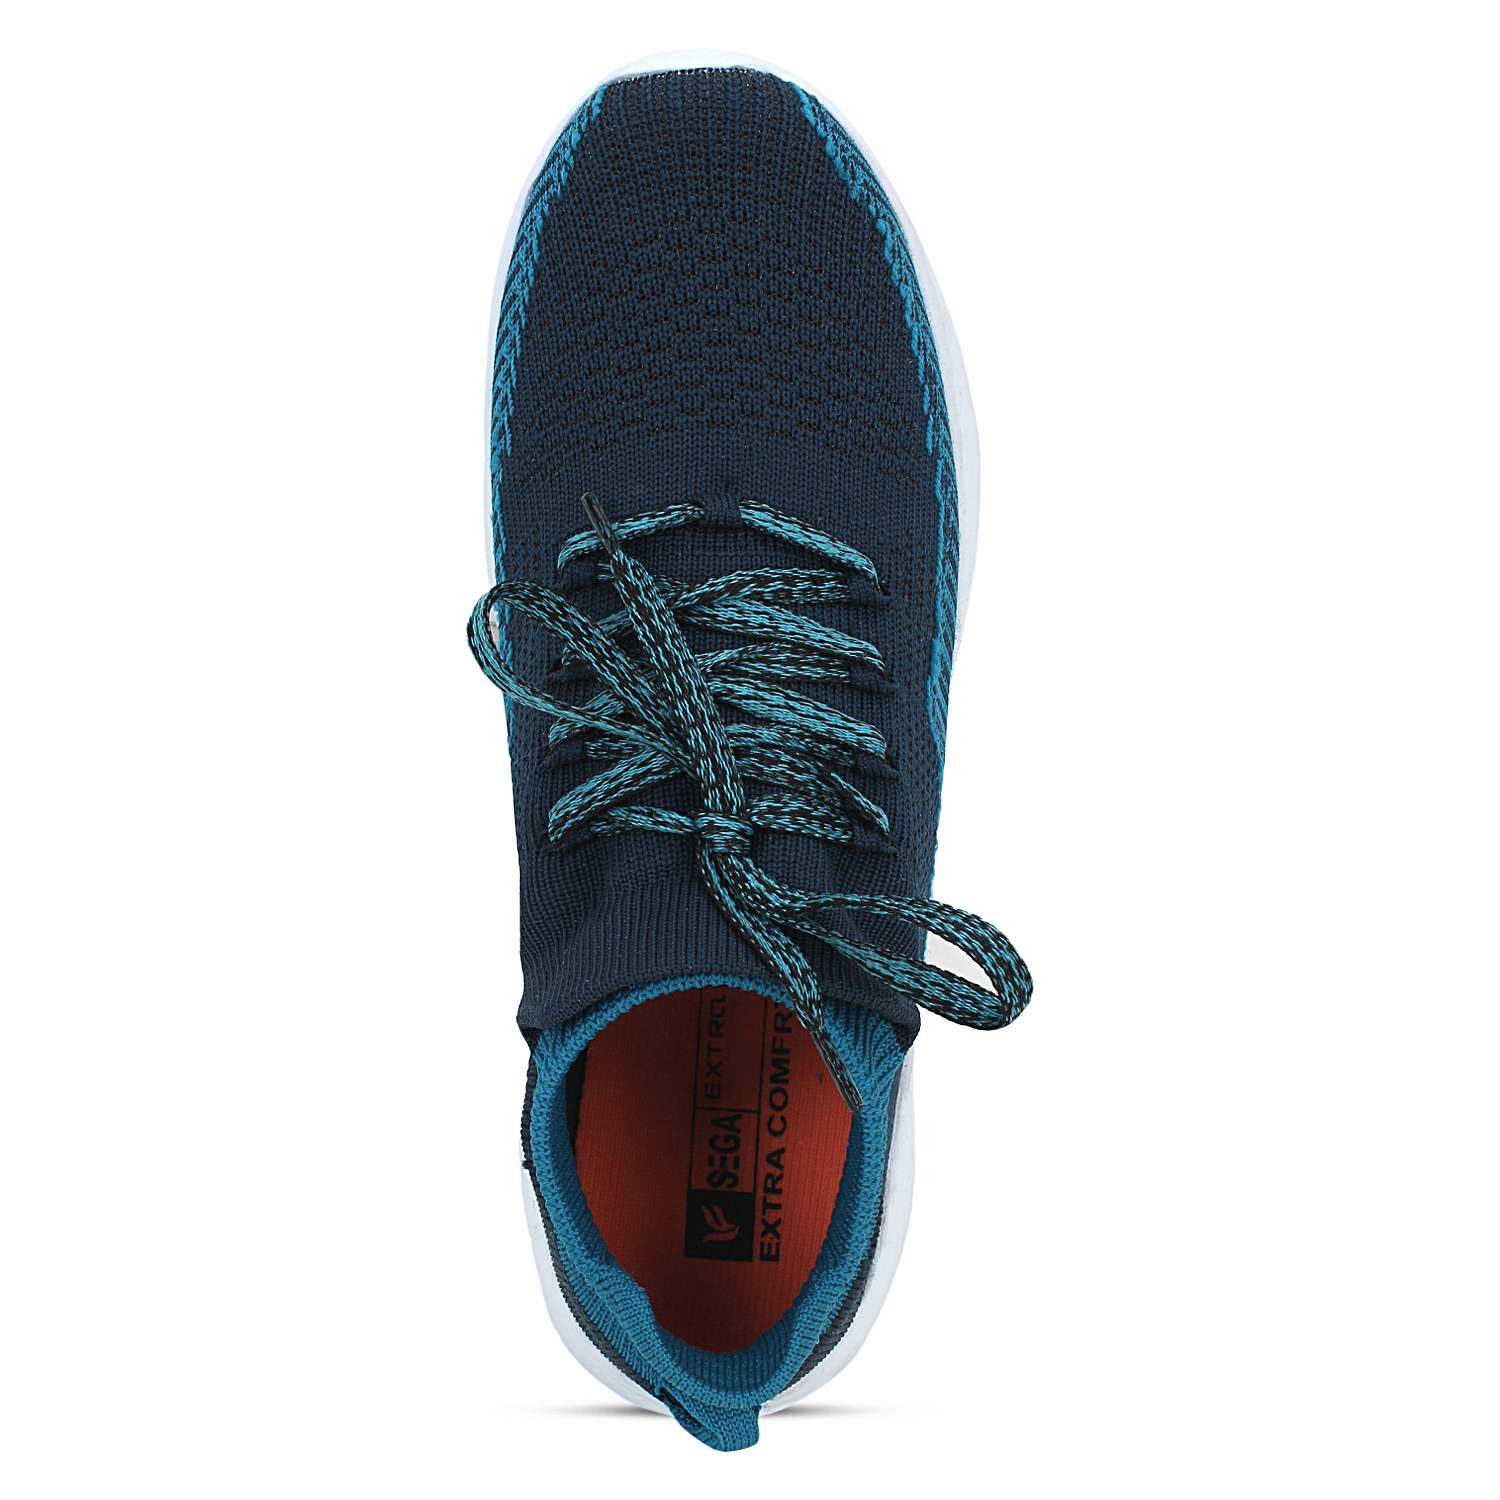 KS-11 PBLU SBLU Mens Shoes